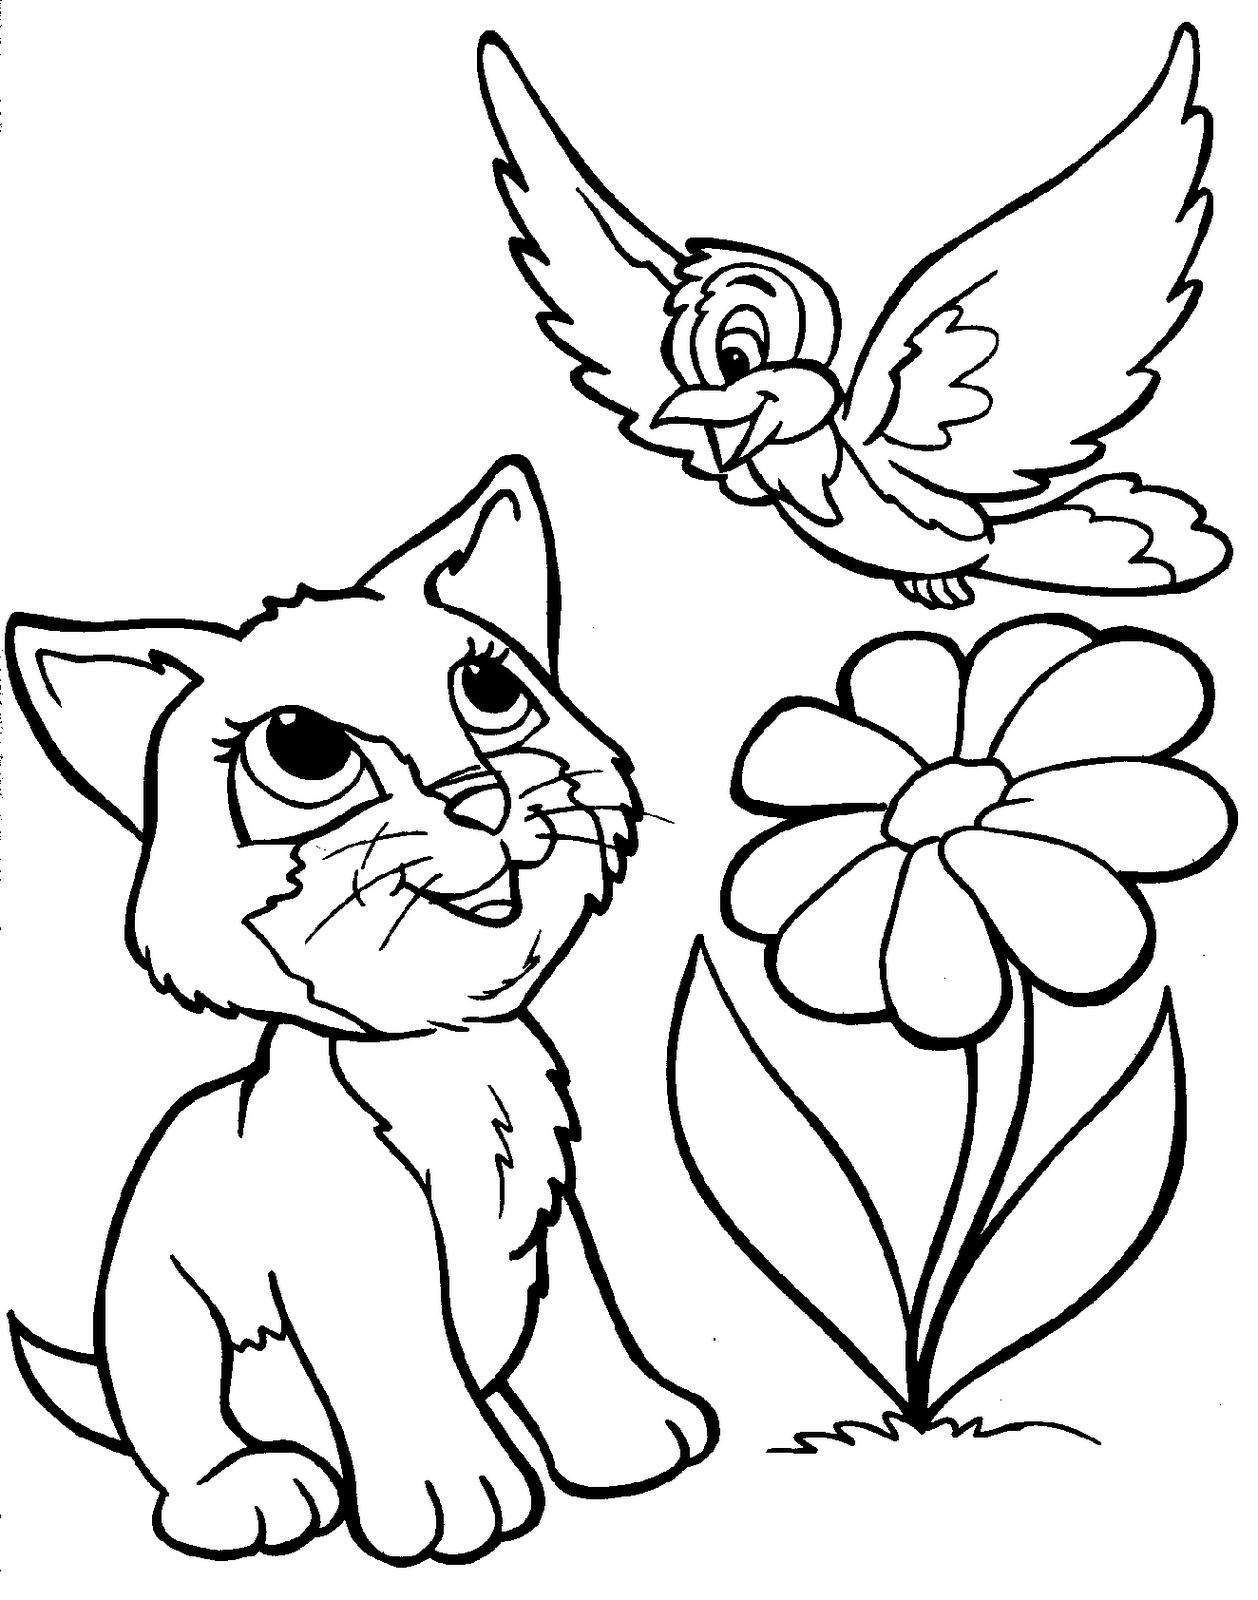 a cat and bird coloring for kids animal coloring pages kidsdrawing free coloring pages online - Animals Coloring Book